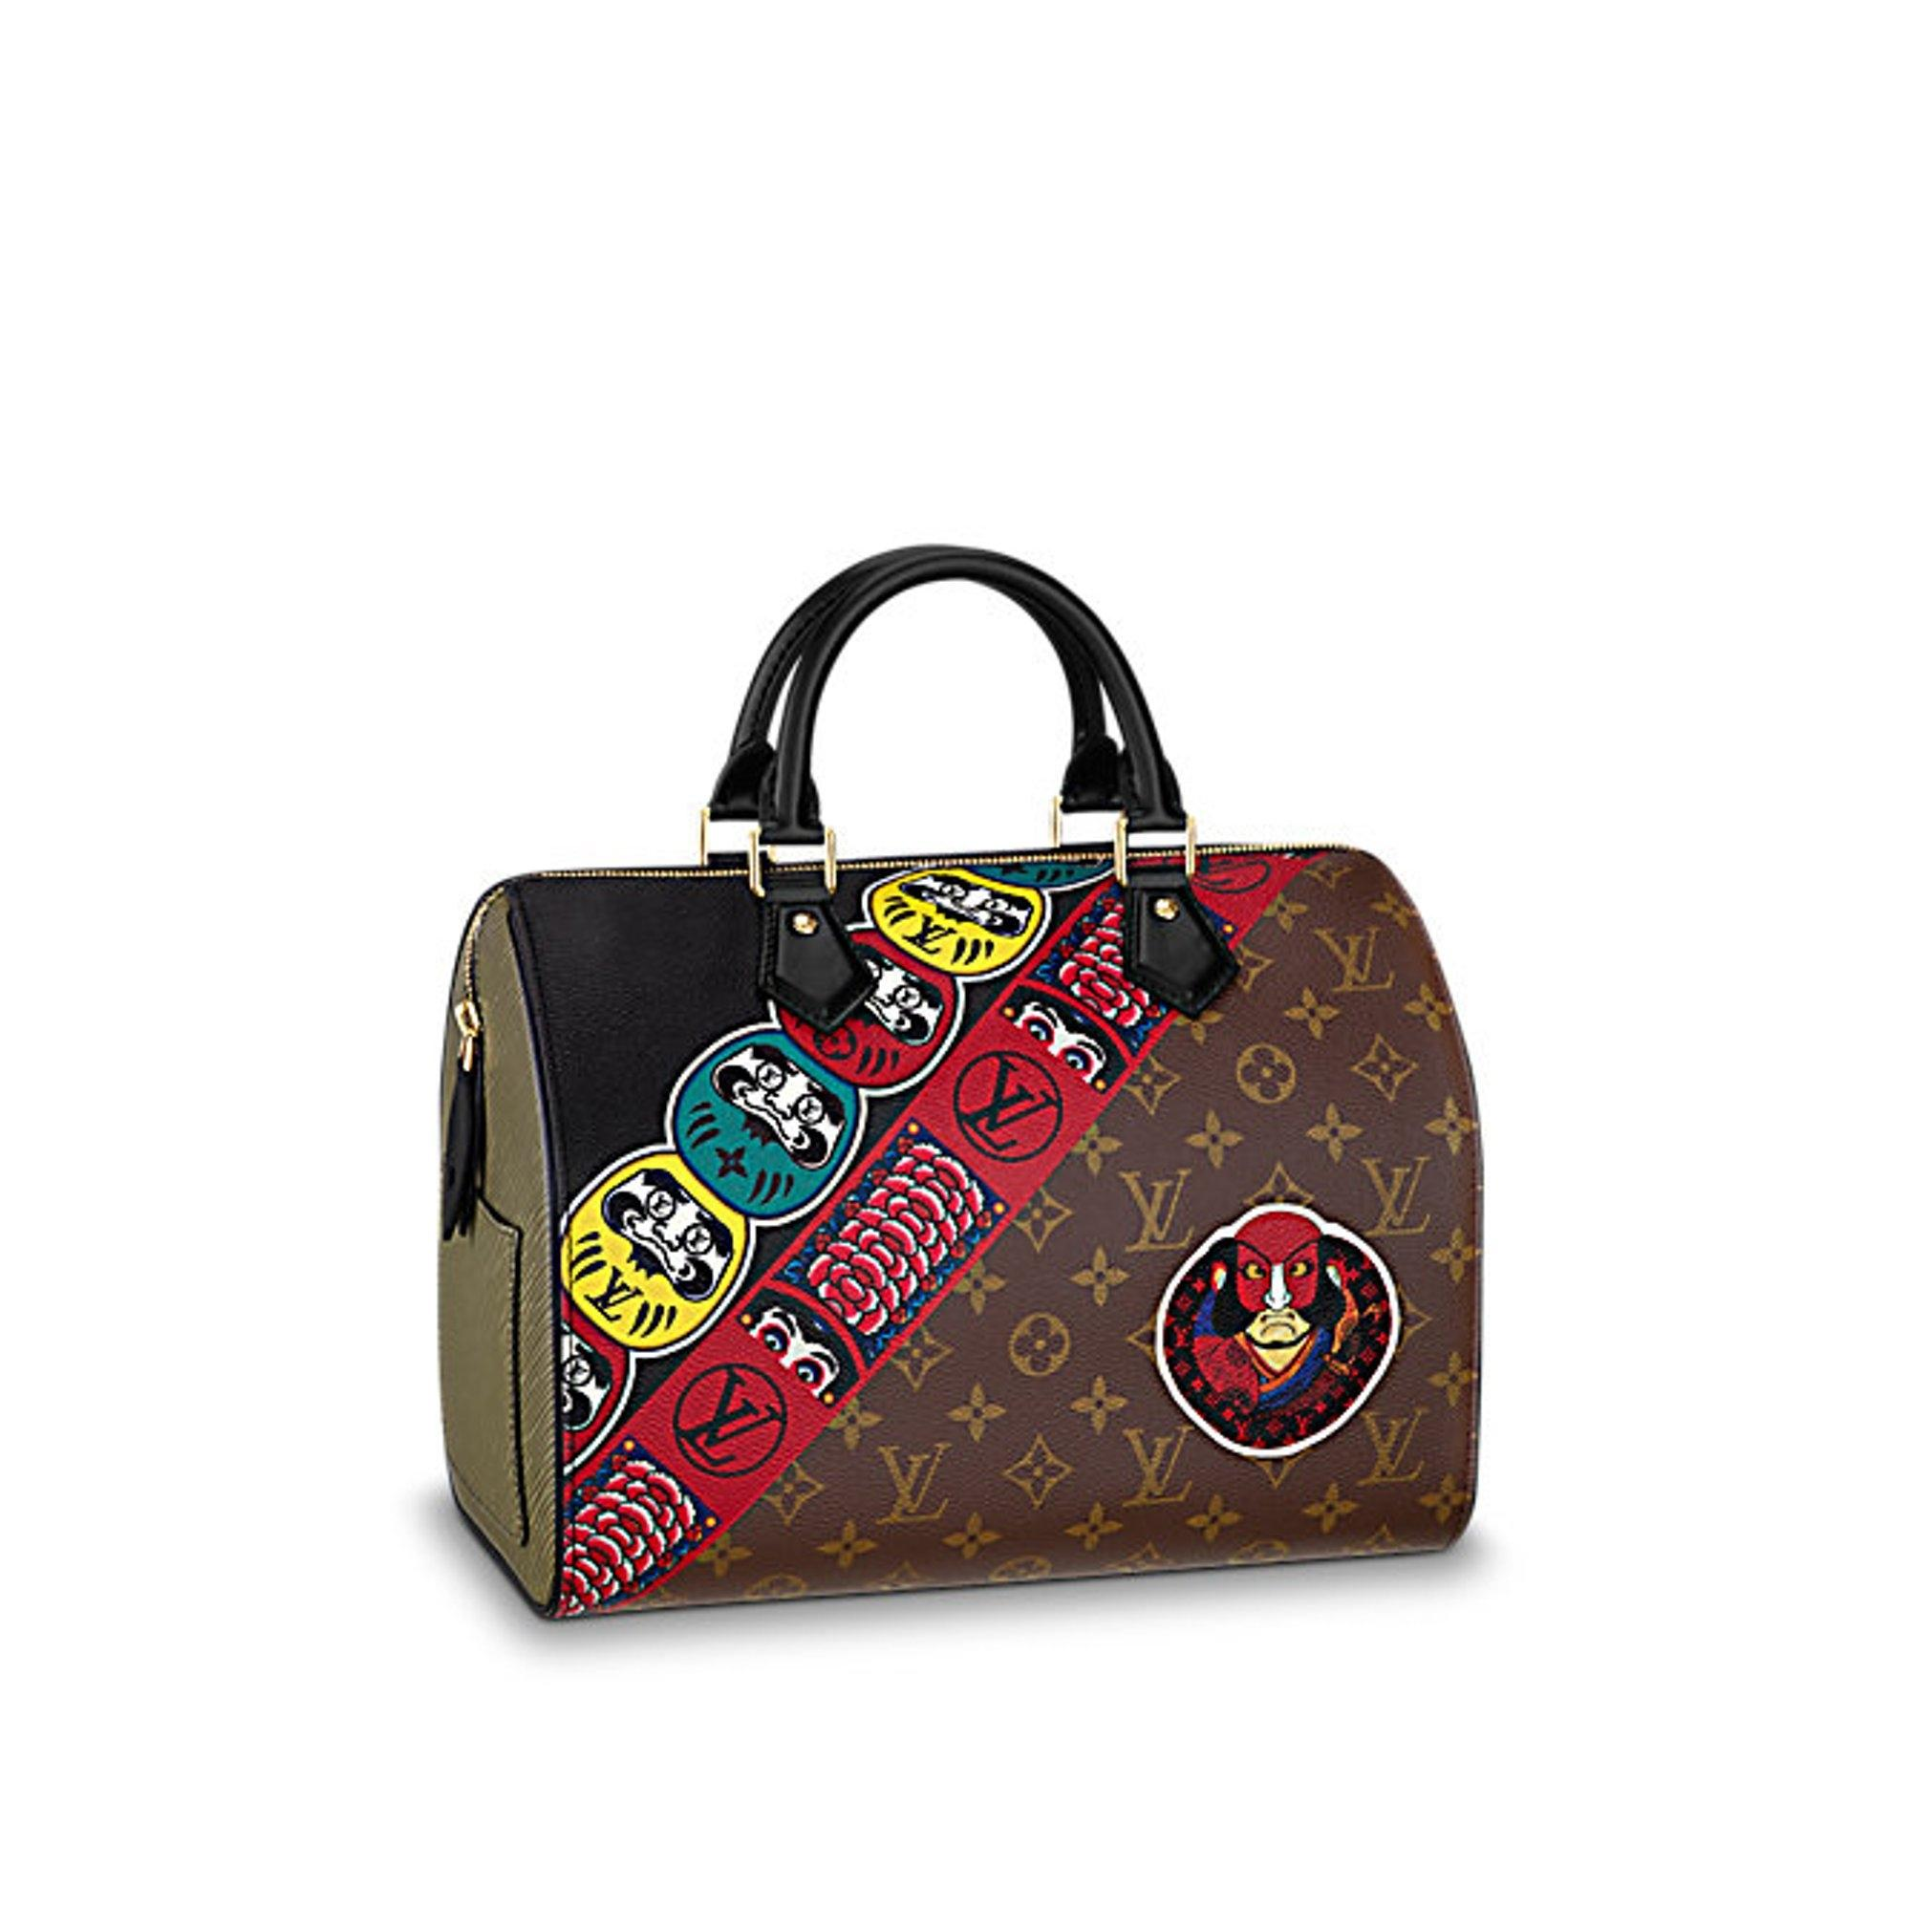 louis vuitton limited edition speedy bag reference guide